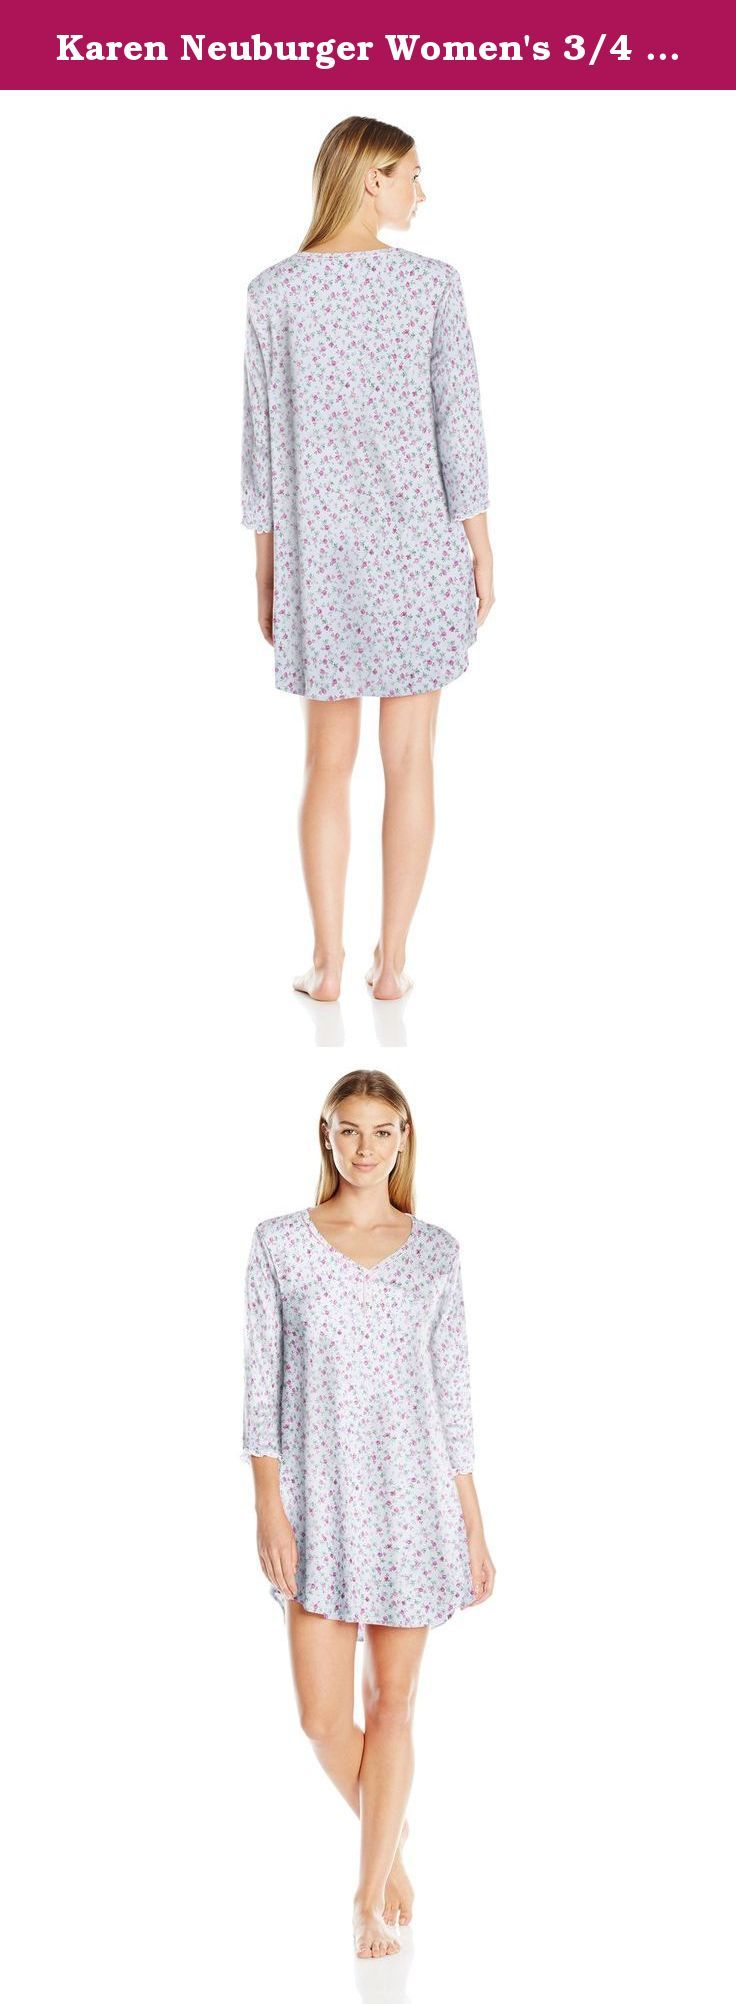 Karen Neuburger Women's 3/4 Slv Pullover Nightshirt, NA Ditsy/Berry, X-Large. You'll want to lounge around in these pajamas all day Karen Neuburger sleepwear starts with light weight, cozy fabric (it's the softest we could find) and an easy fit. Next we add unique details-such as an embroidered pocket or fun contrast piping-to make these pajamas simply your favorite. Karen Neuburger started the all-day sleepwear revolution by designing pajamas she wanted to stay in all day long, twenty…